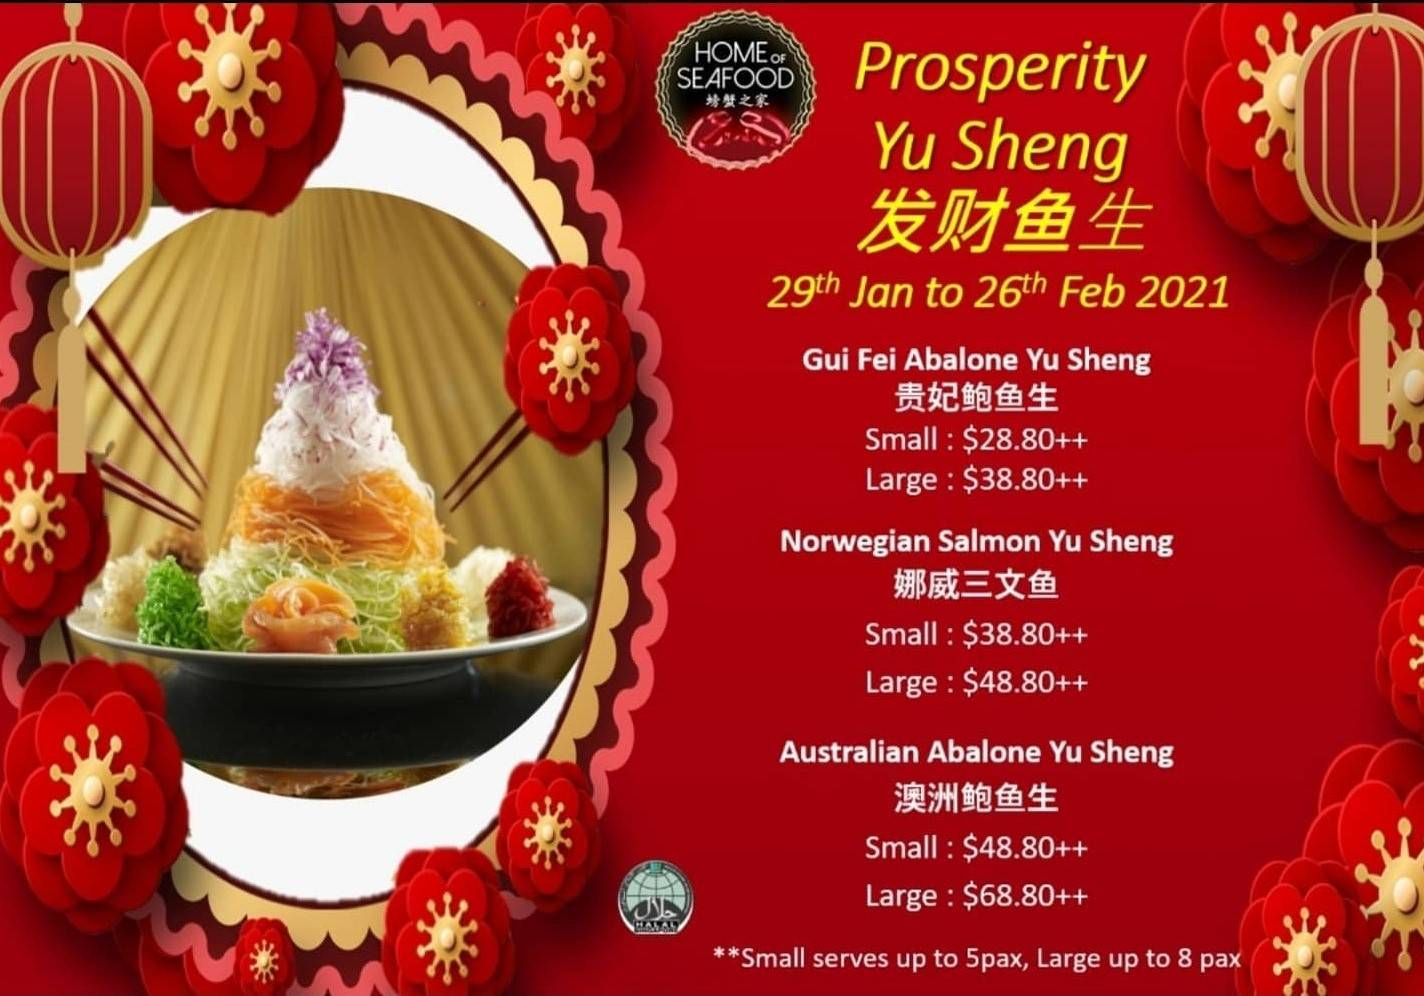 Home of Seafood Halal Yu Sheng Chinese New Year Singapore